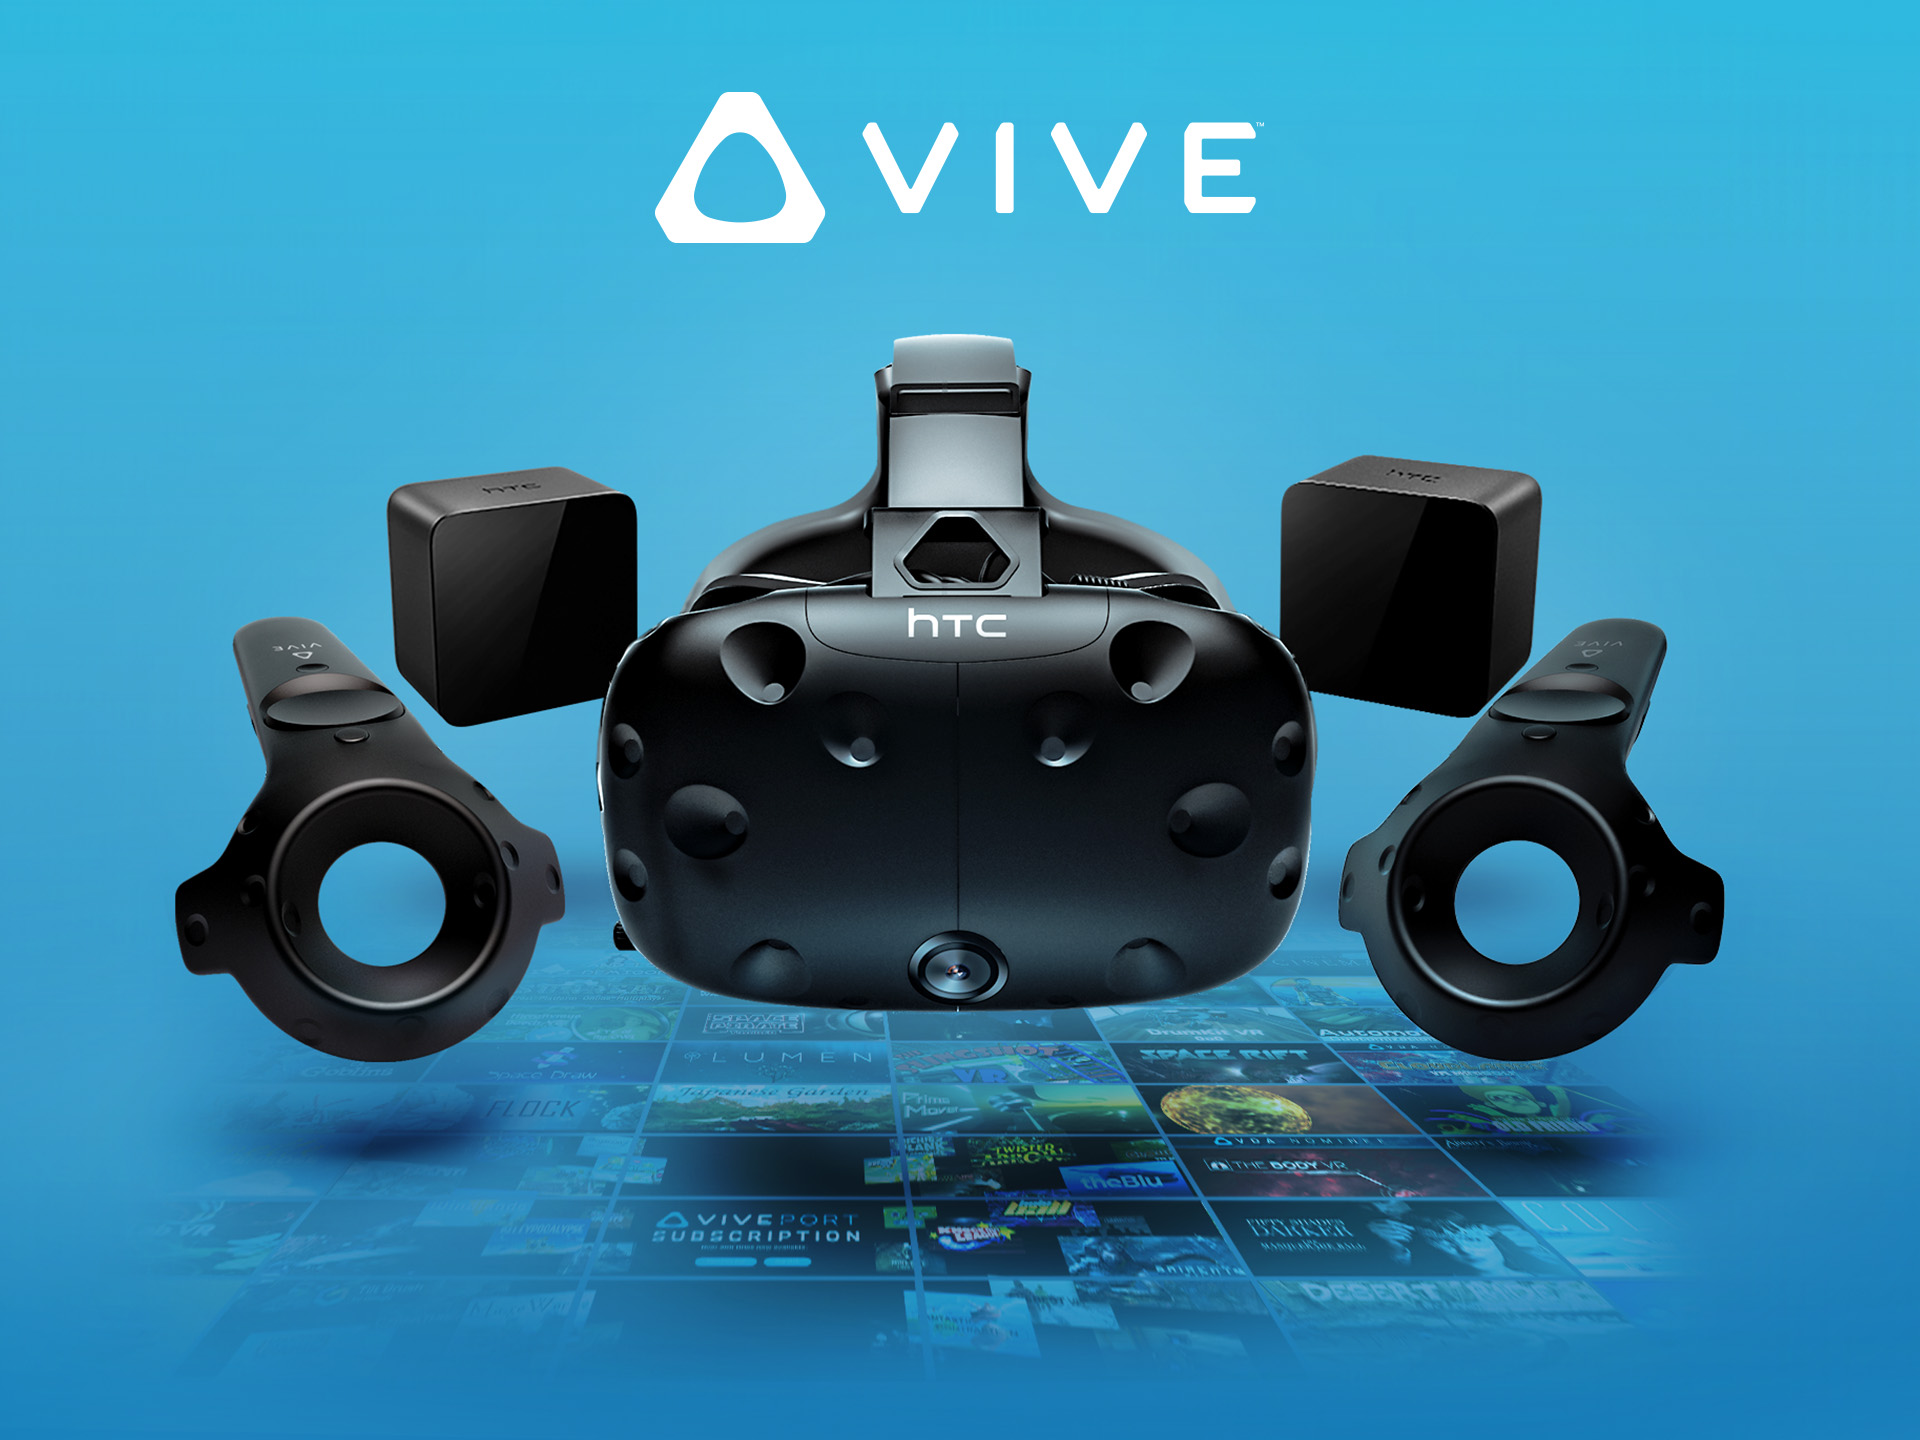 HTC Vive gets a price cut to become accessible to the mass market 1